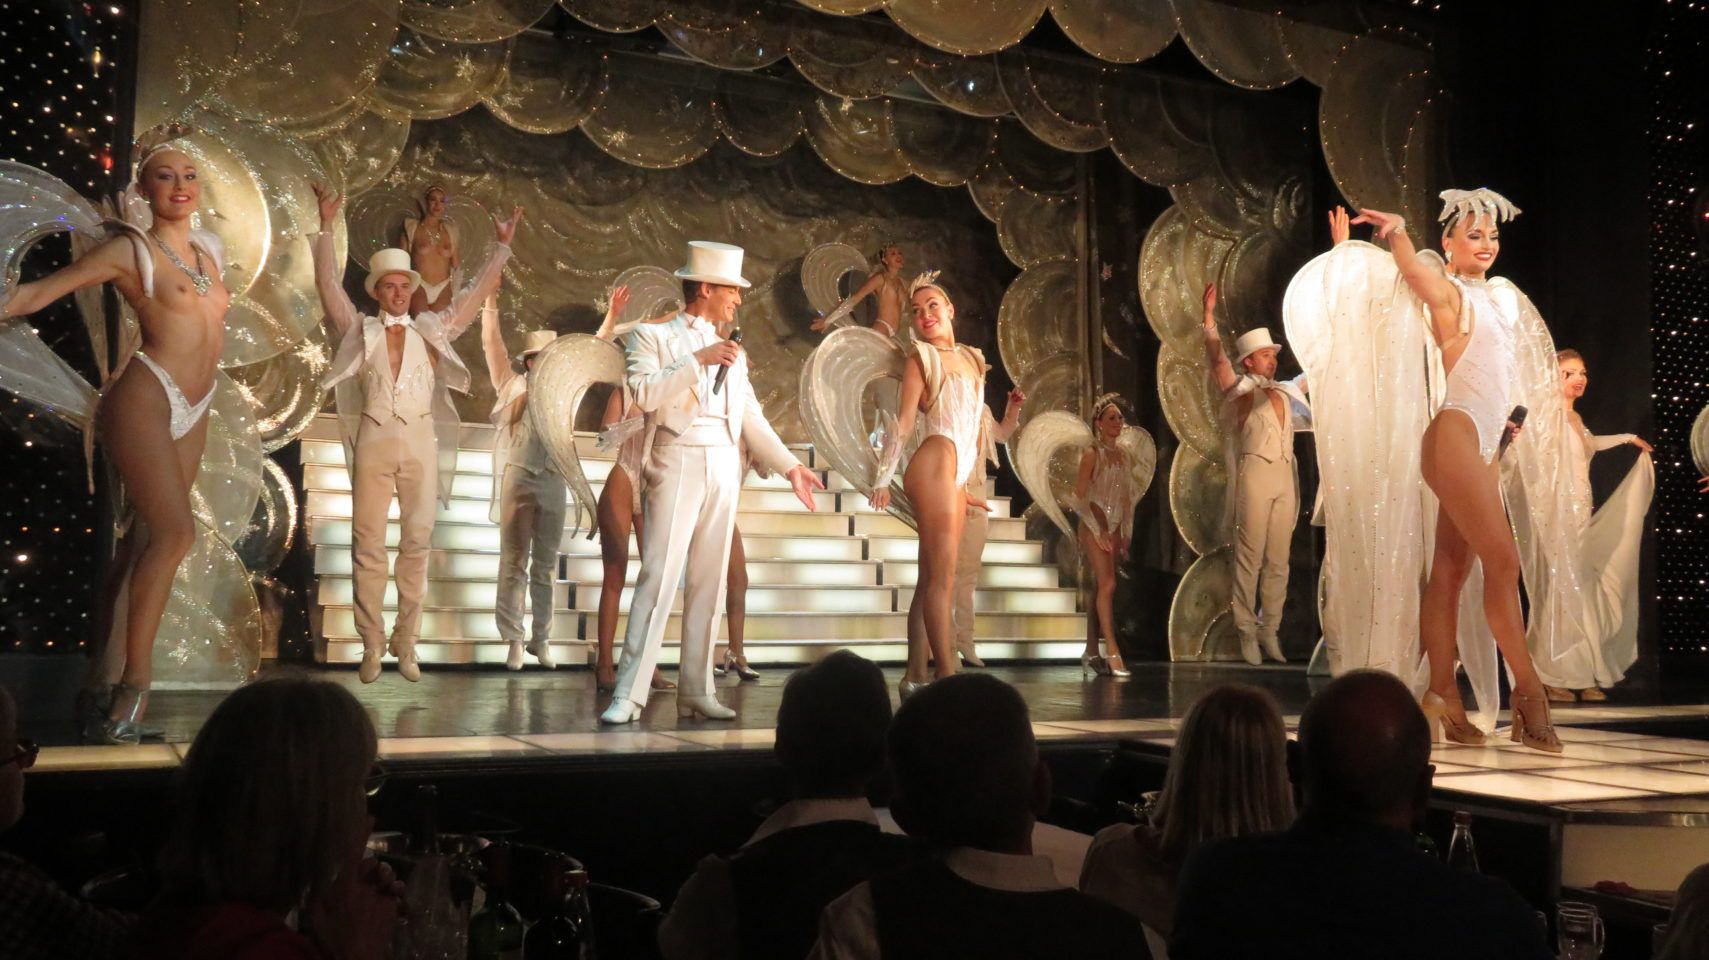 <em><strong>Paradis Latin cabaret</strong> </em>~ Paris, France